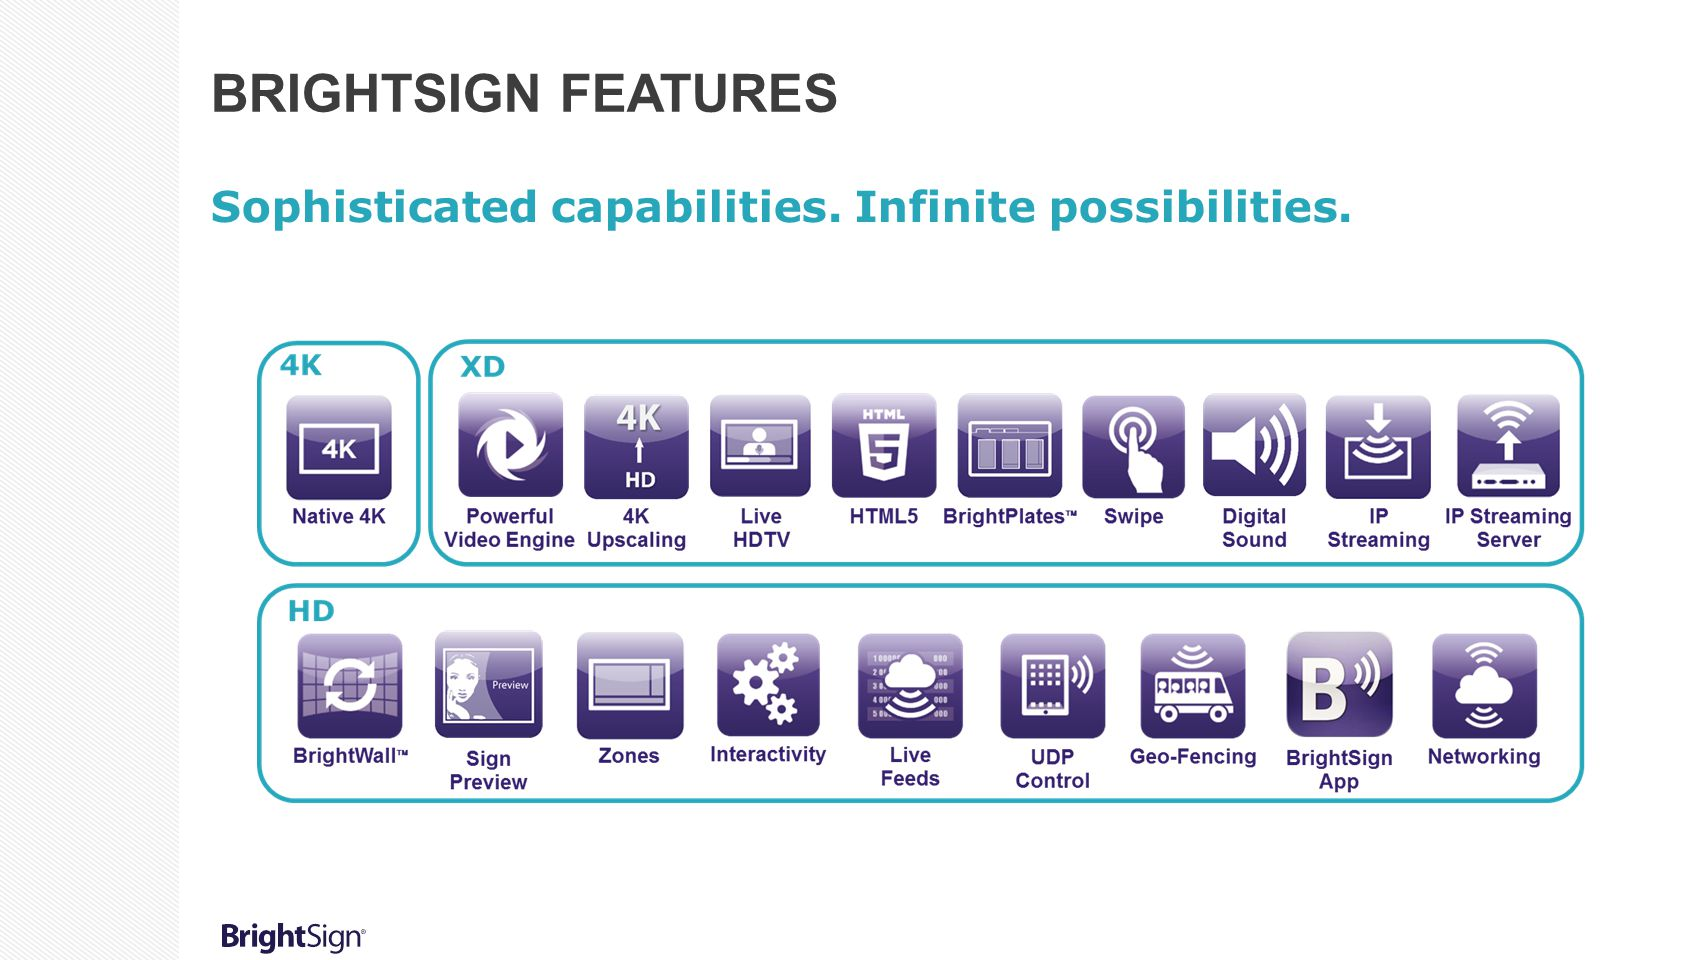 BrightSign Features Sophisticated capabilities. Infinite possibilities.